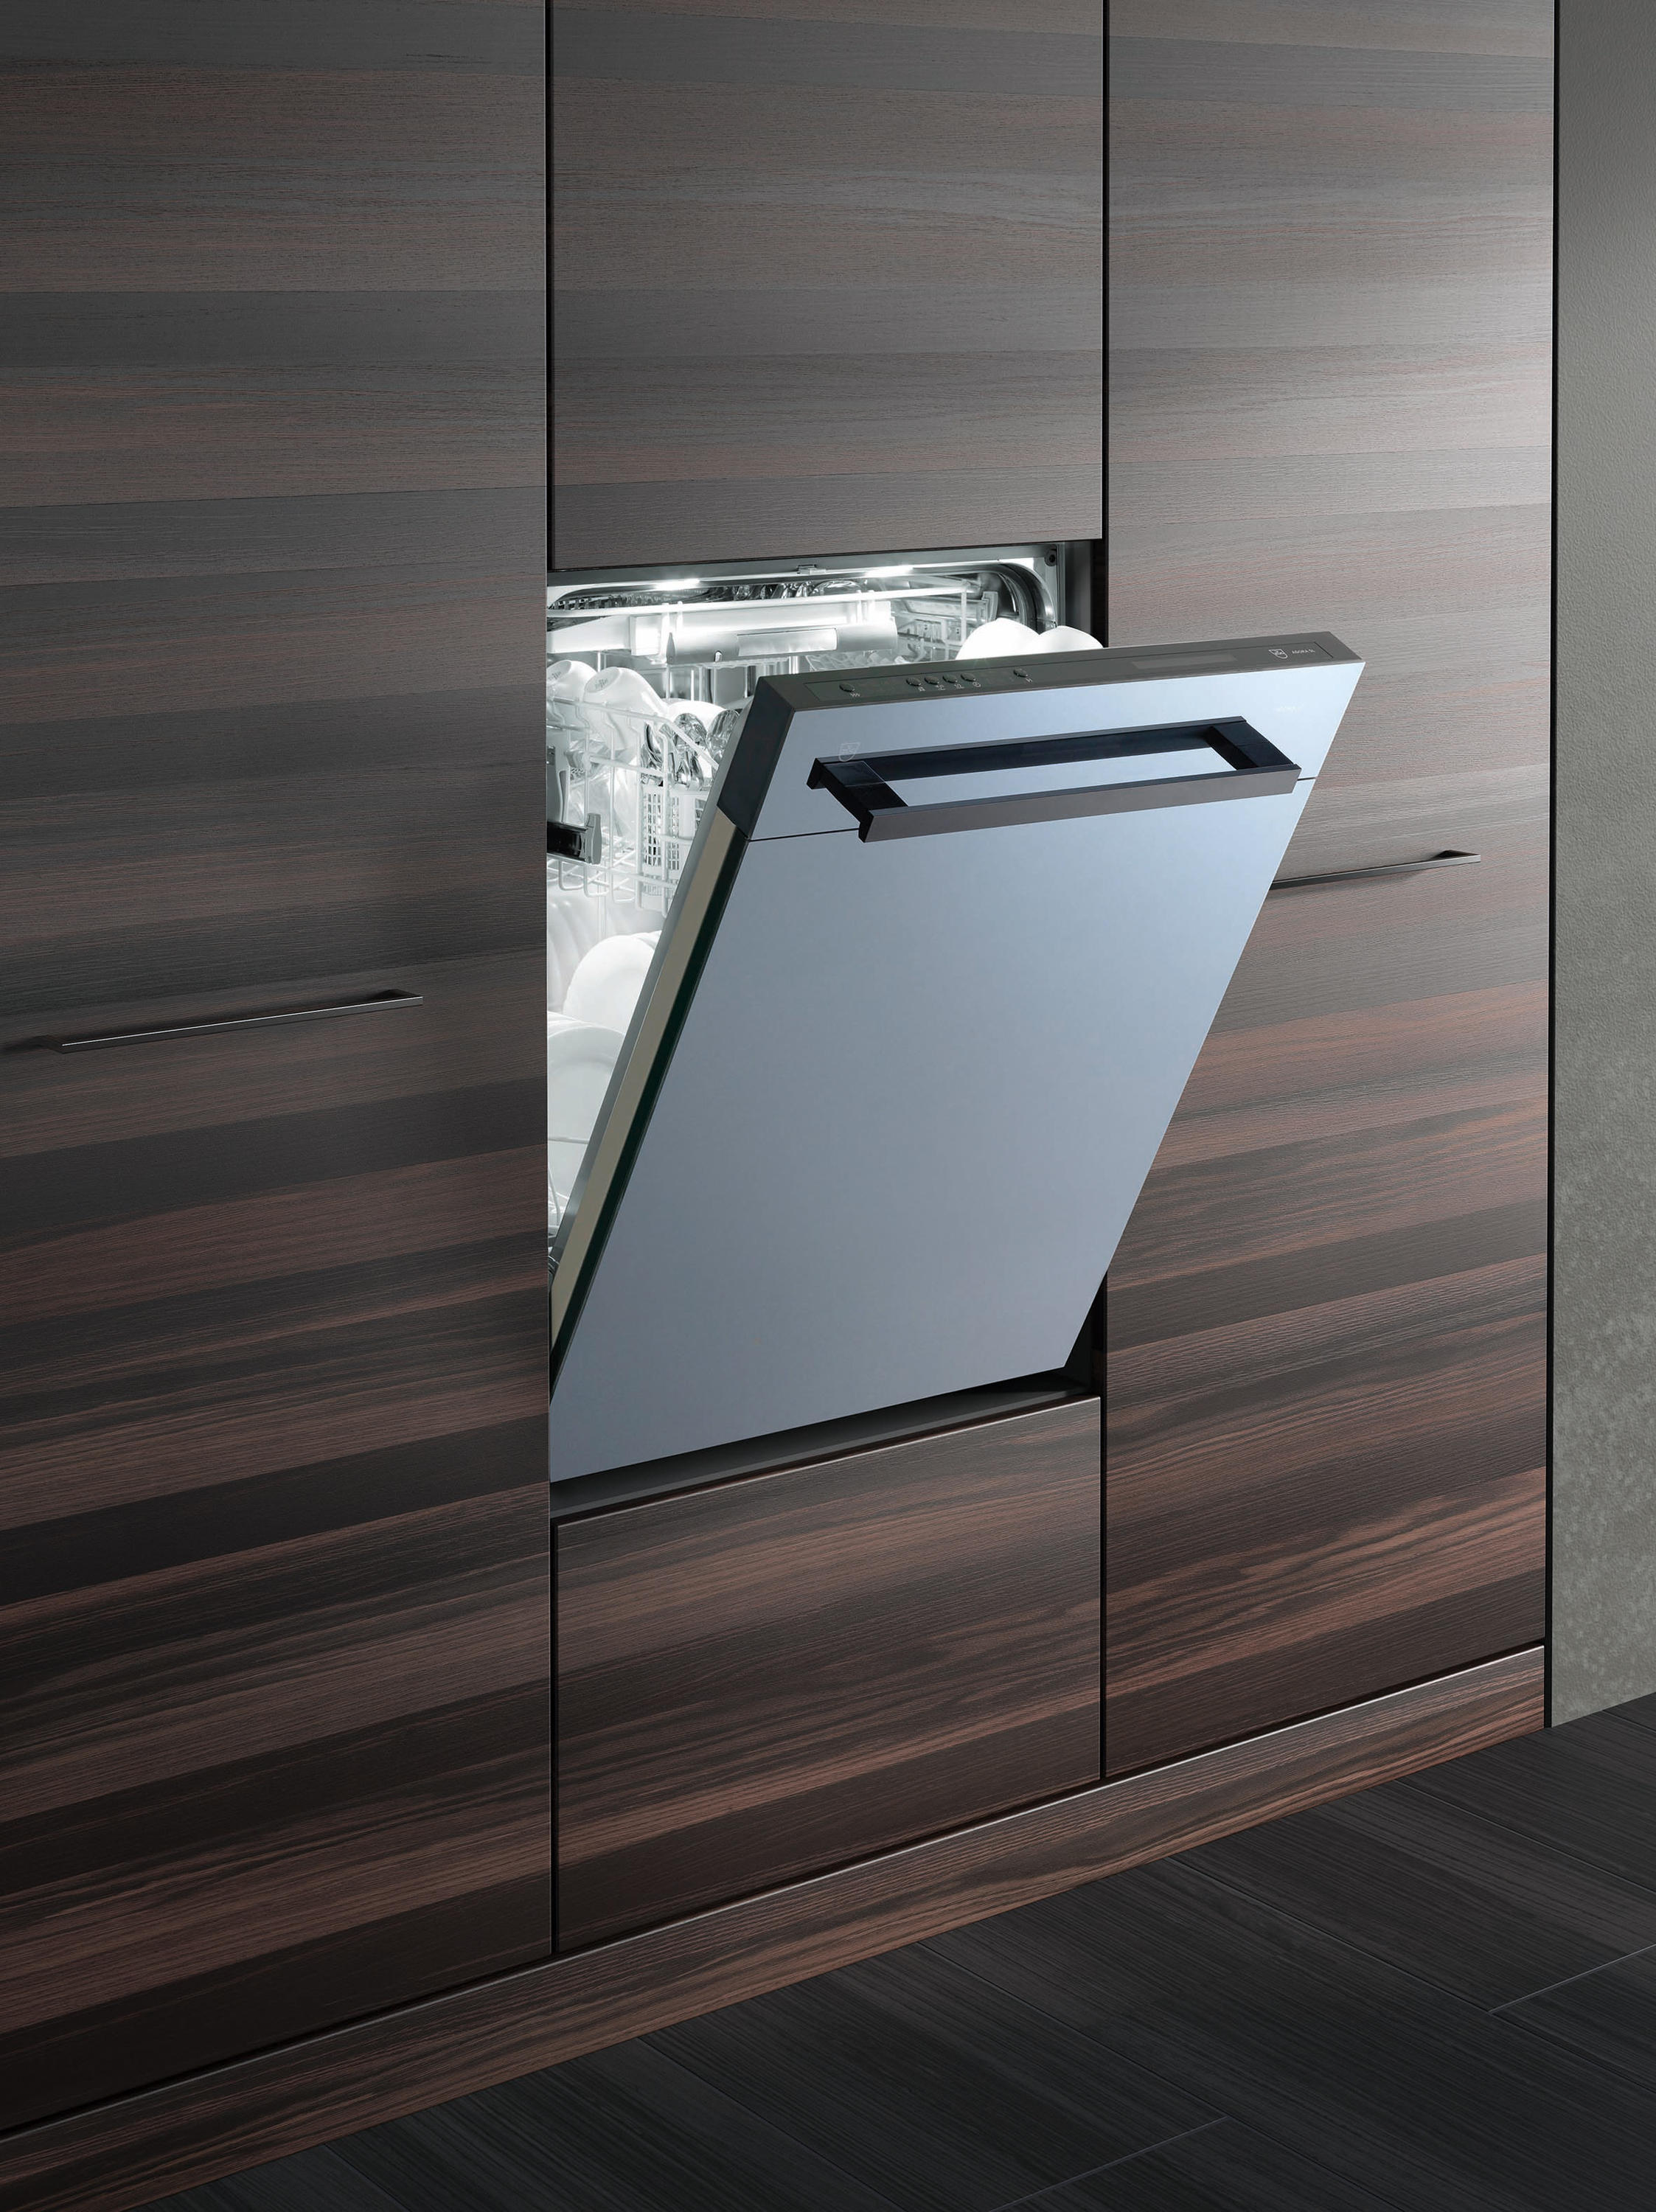 dishwasher adora handle black dishwashers from v zug architonic. Black Bedroom Furniture Sets. Home Design Ideas